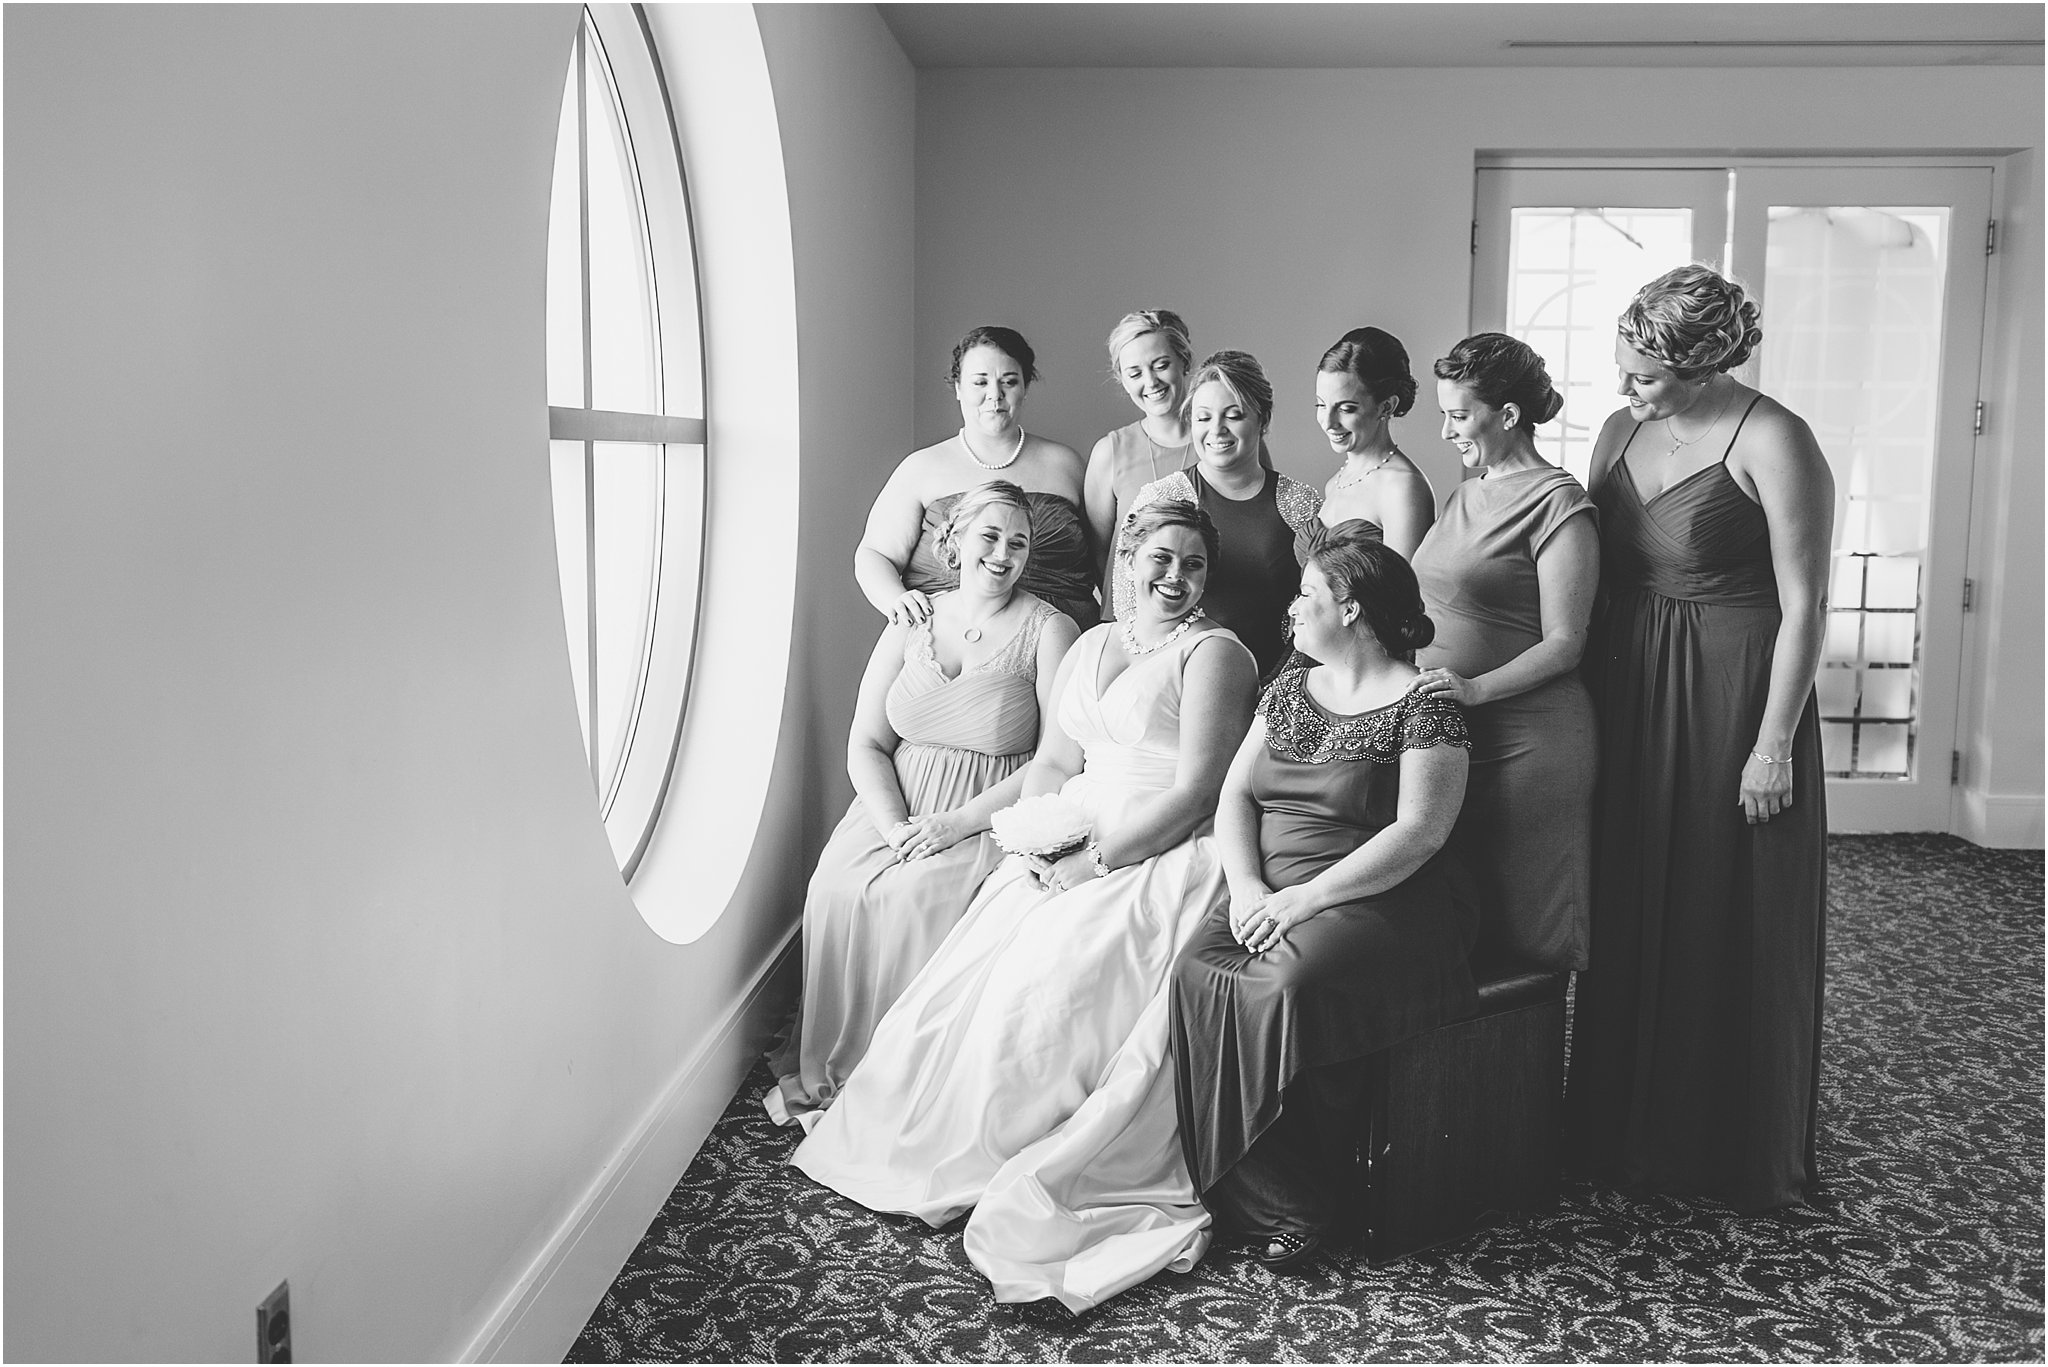 va_jessica_ryan_photography_virginia_wedding_norfolk_harrison_opera_house_norfolk_arts_district_portraits_3774